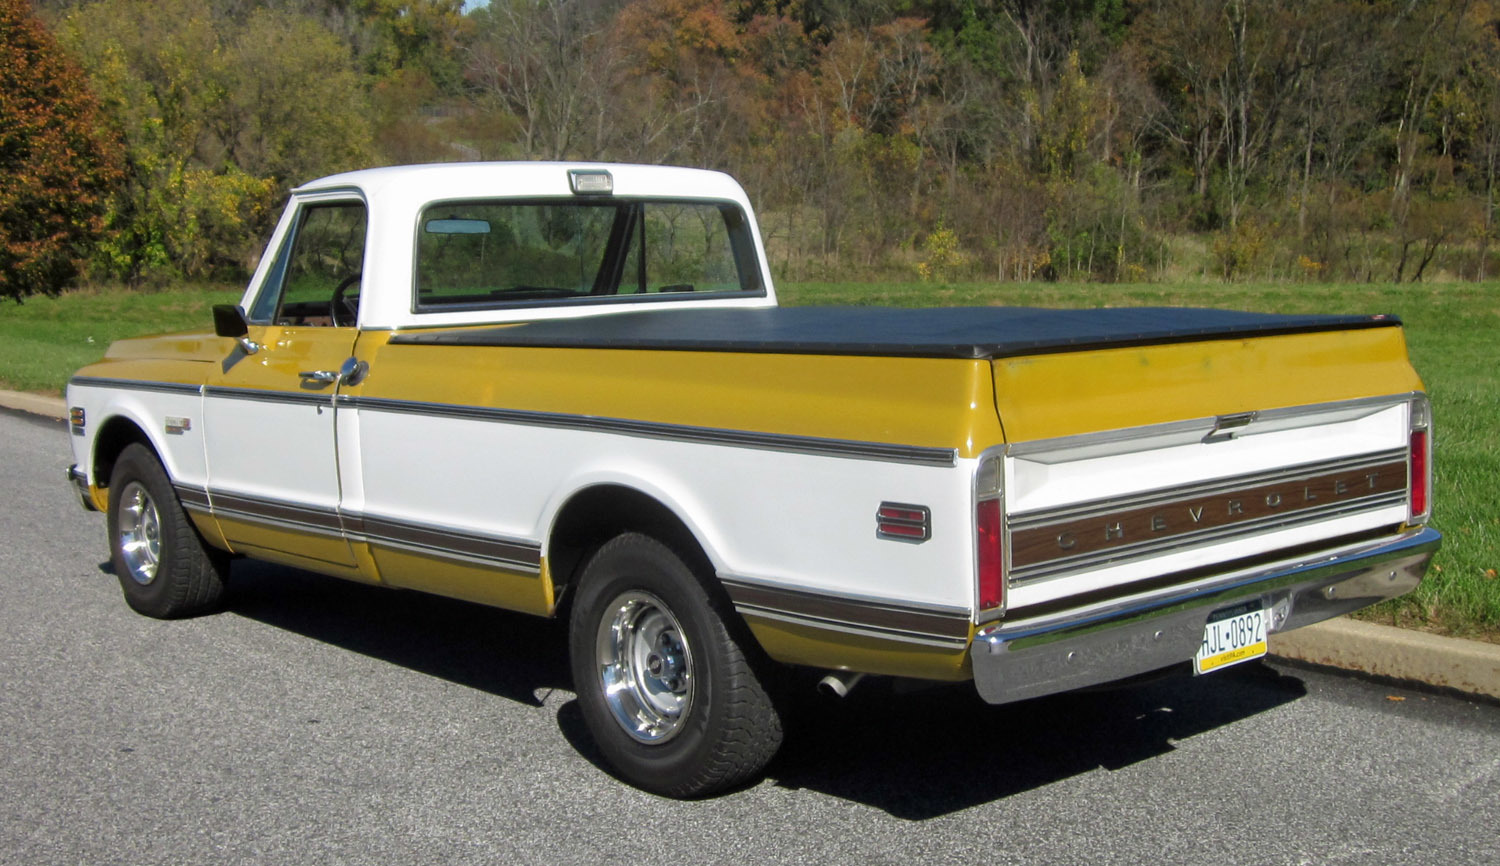 All Chevy chevy cheyenne c10 : 1972 Chevrolet C10 | Connors Motorcar Company